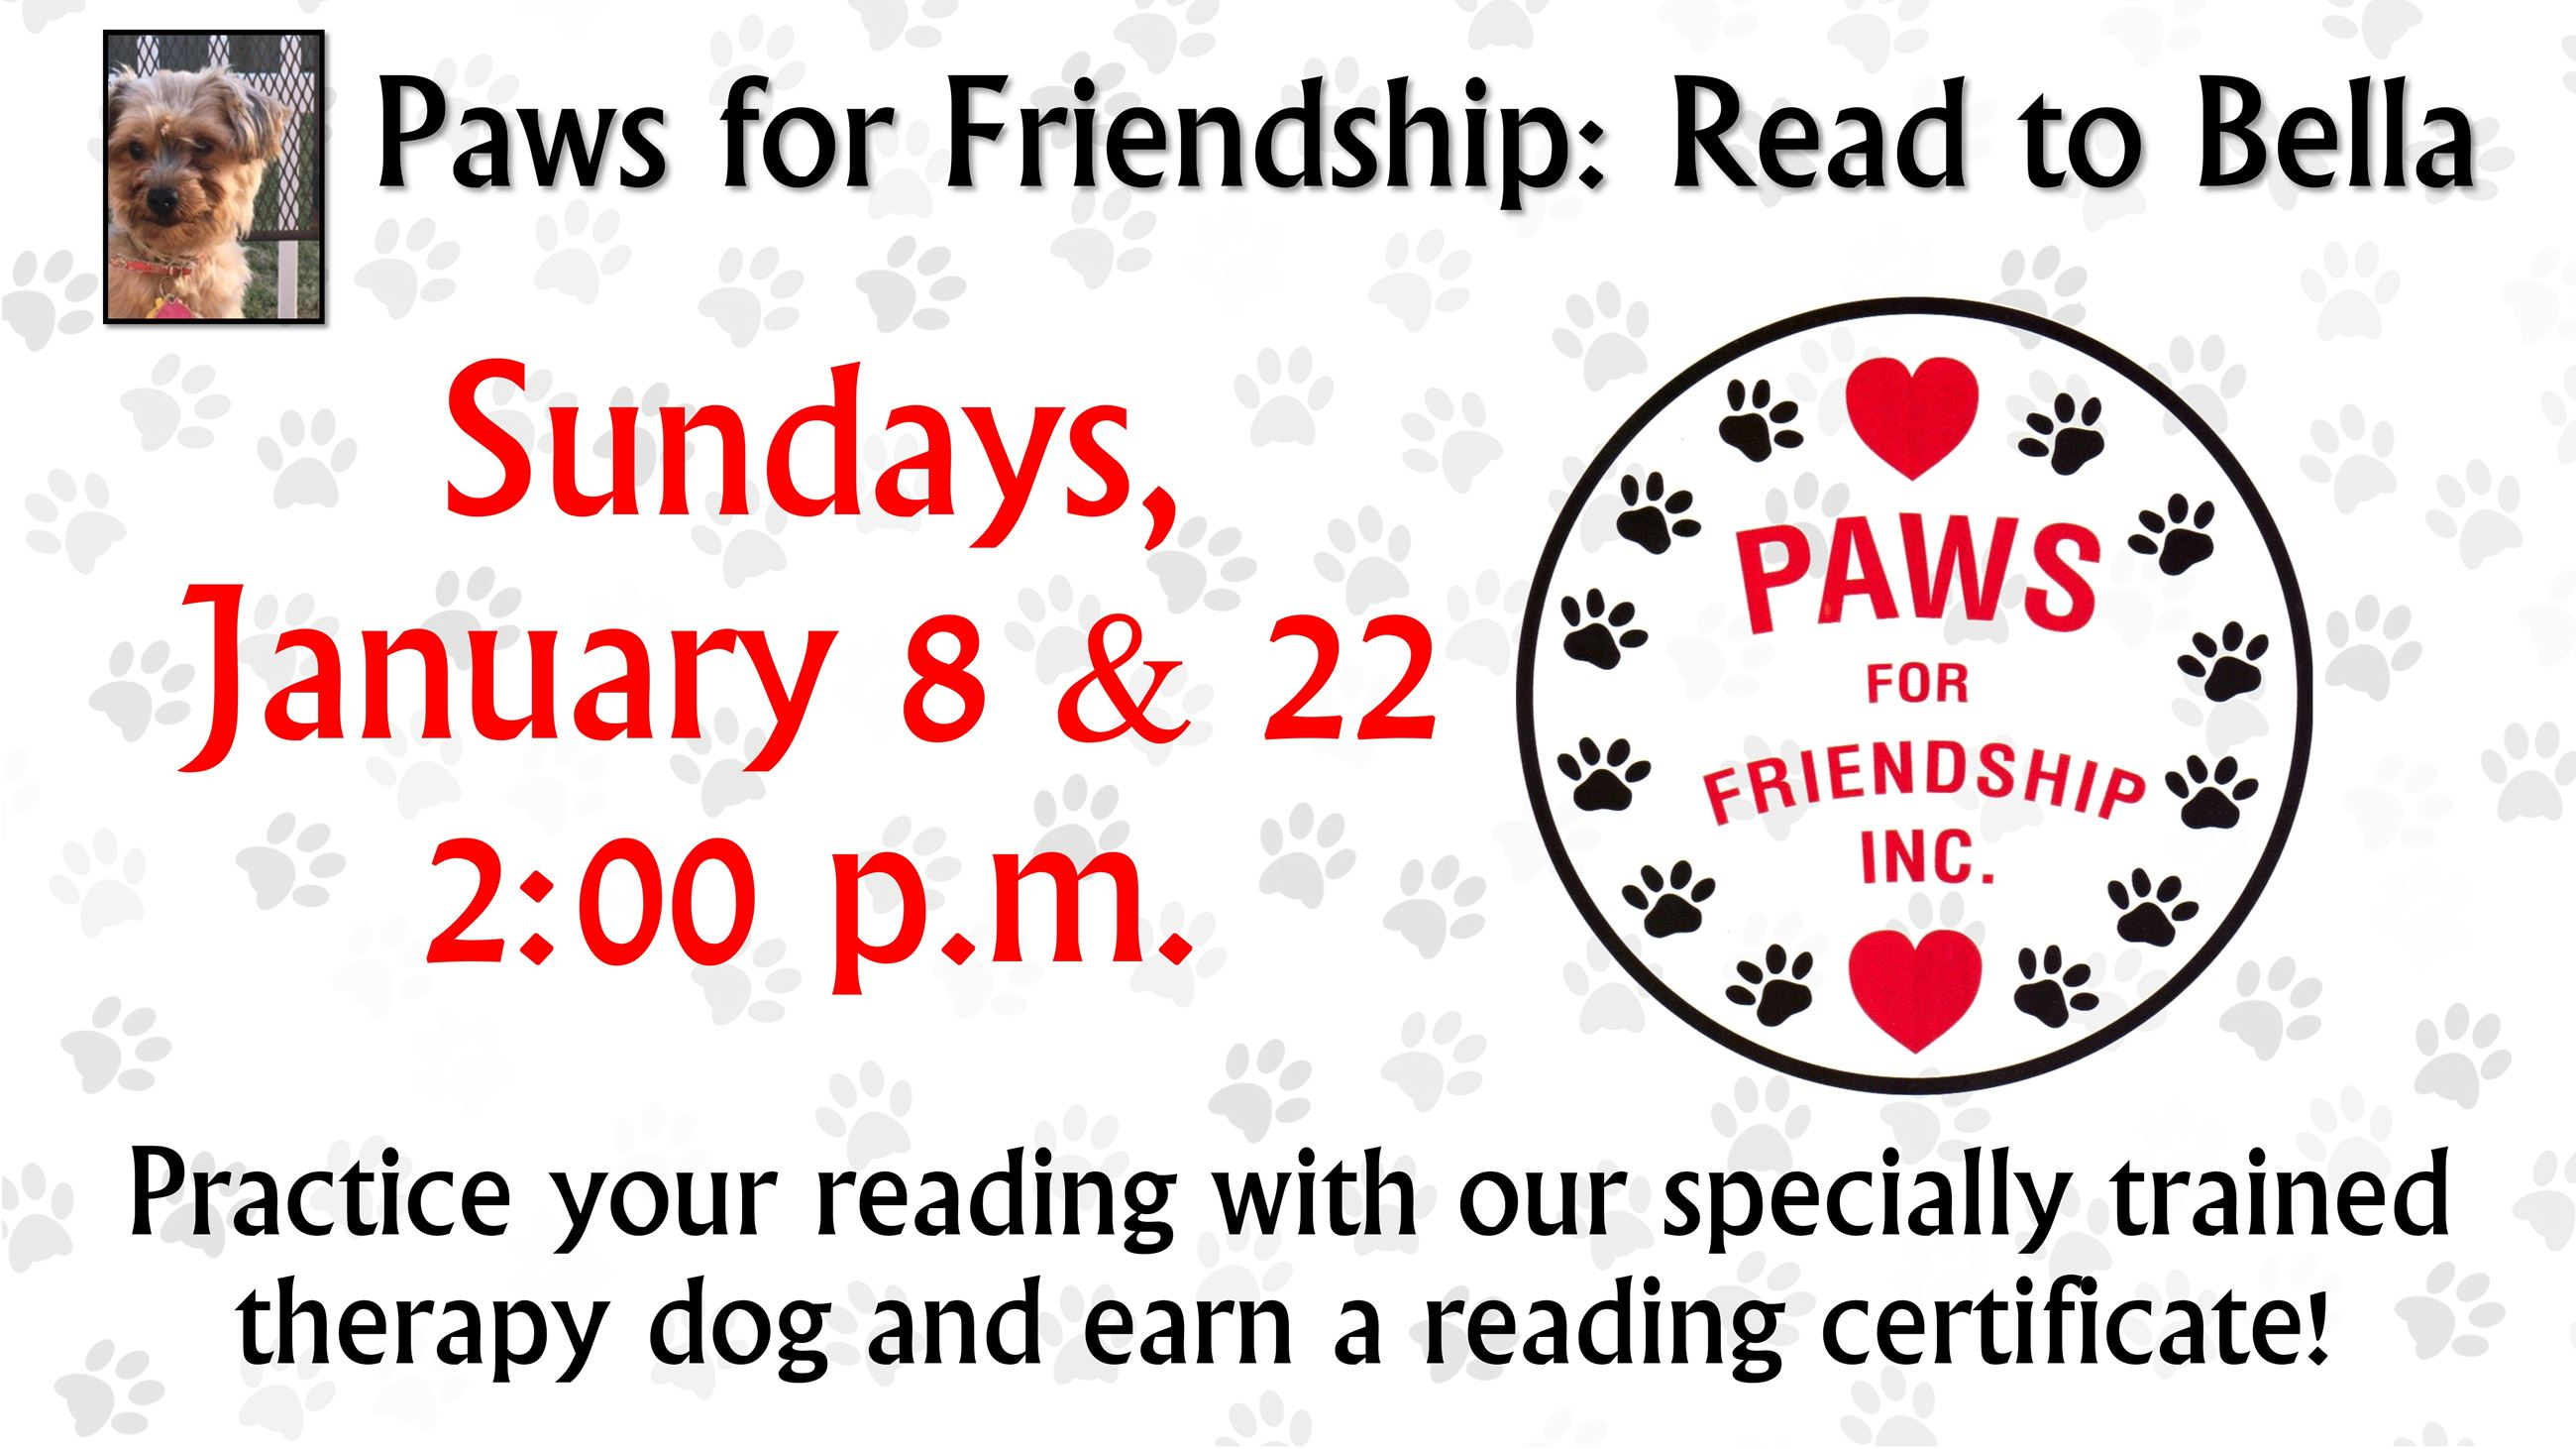 Paws for Friendship Read to Bella